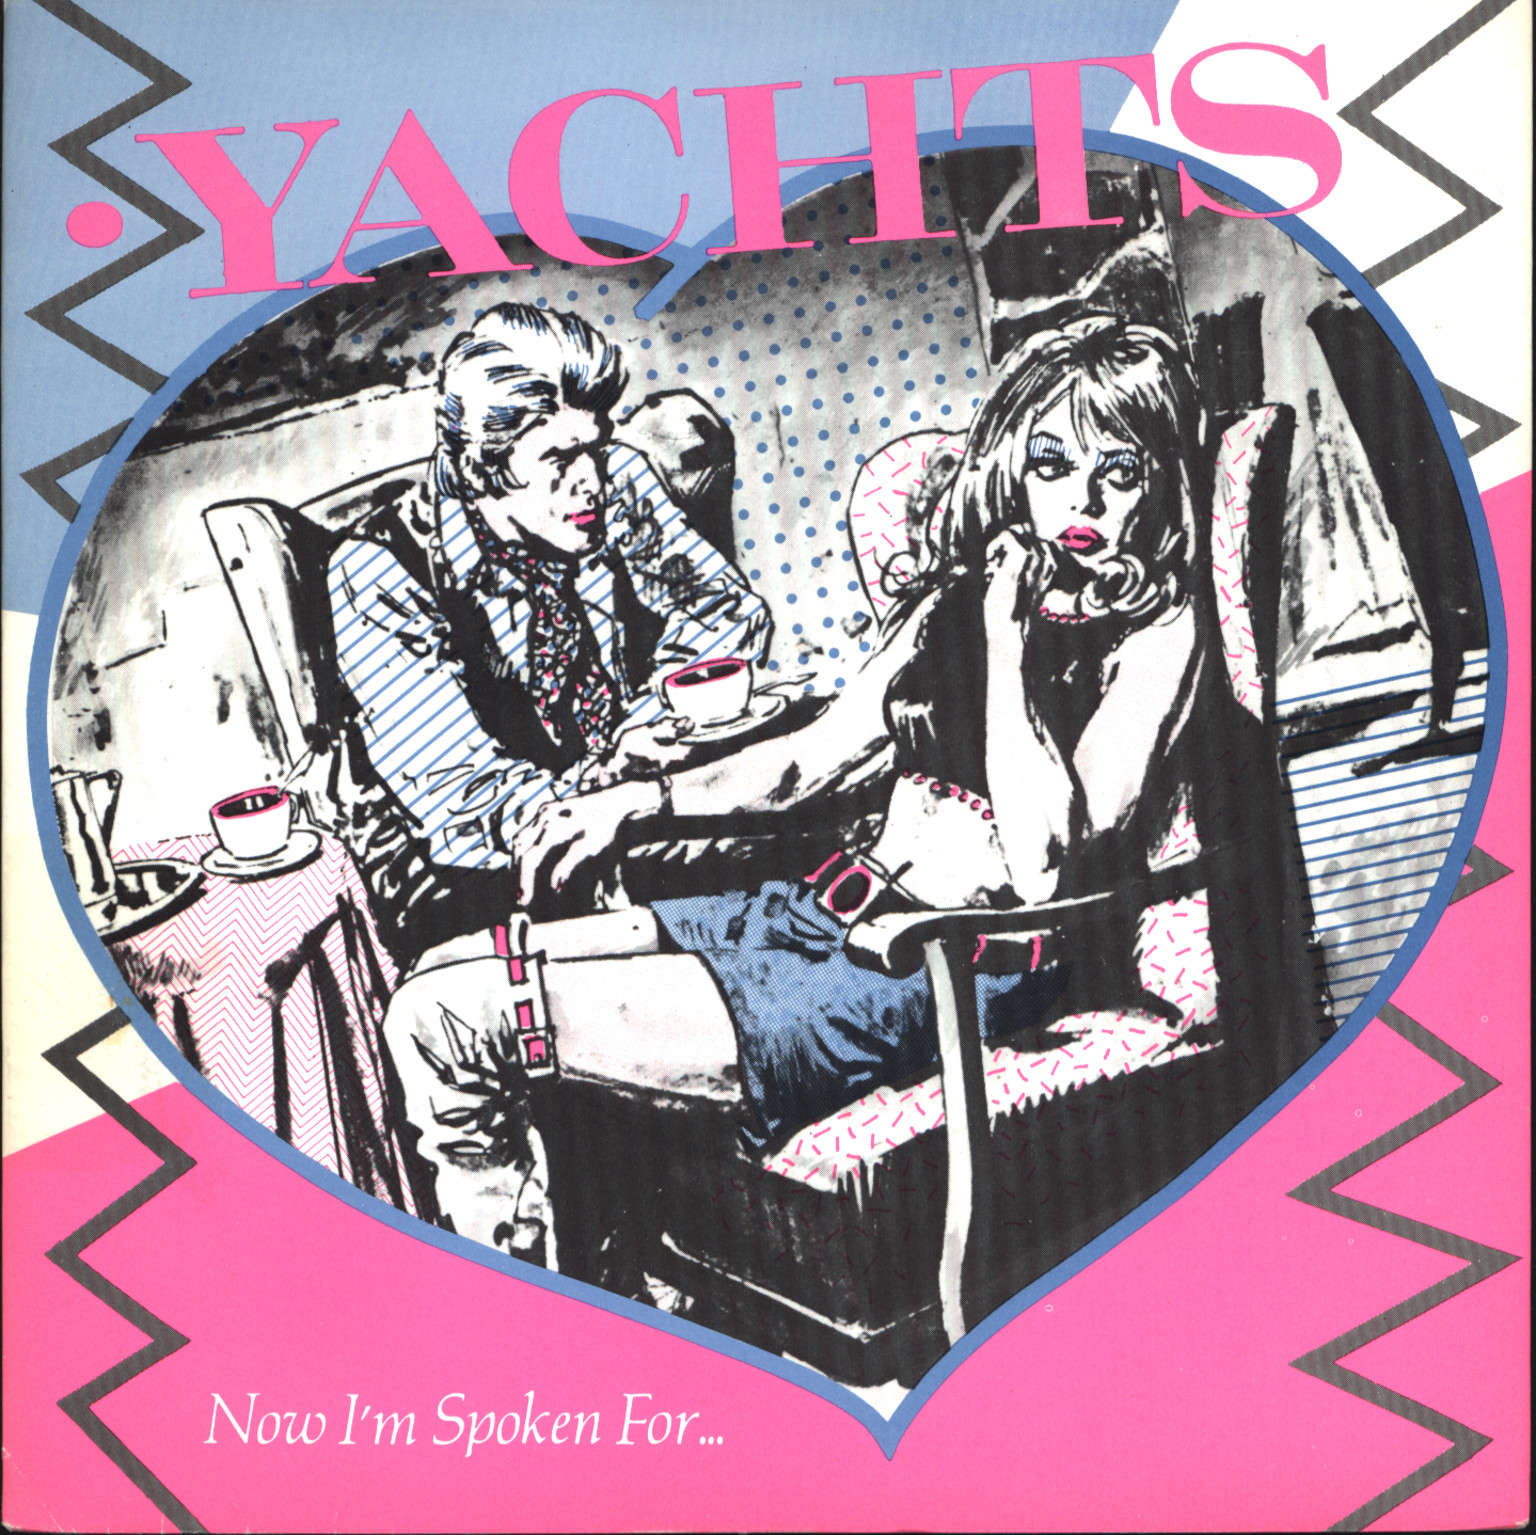 "Yachts: Now I'm Spoken For..., 7"" Single (Vinyl)"